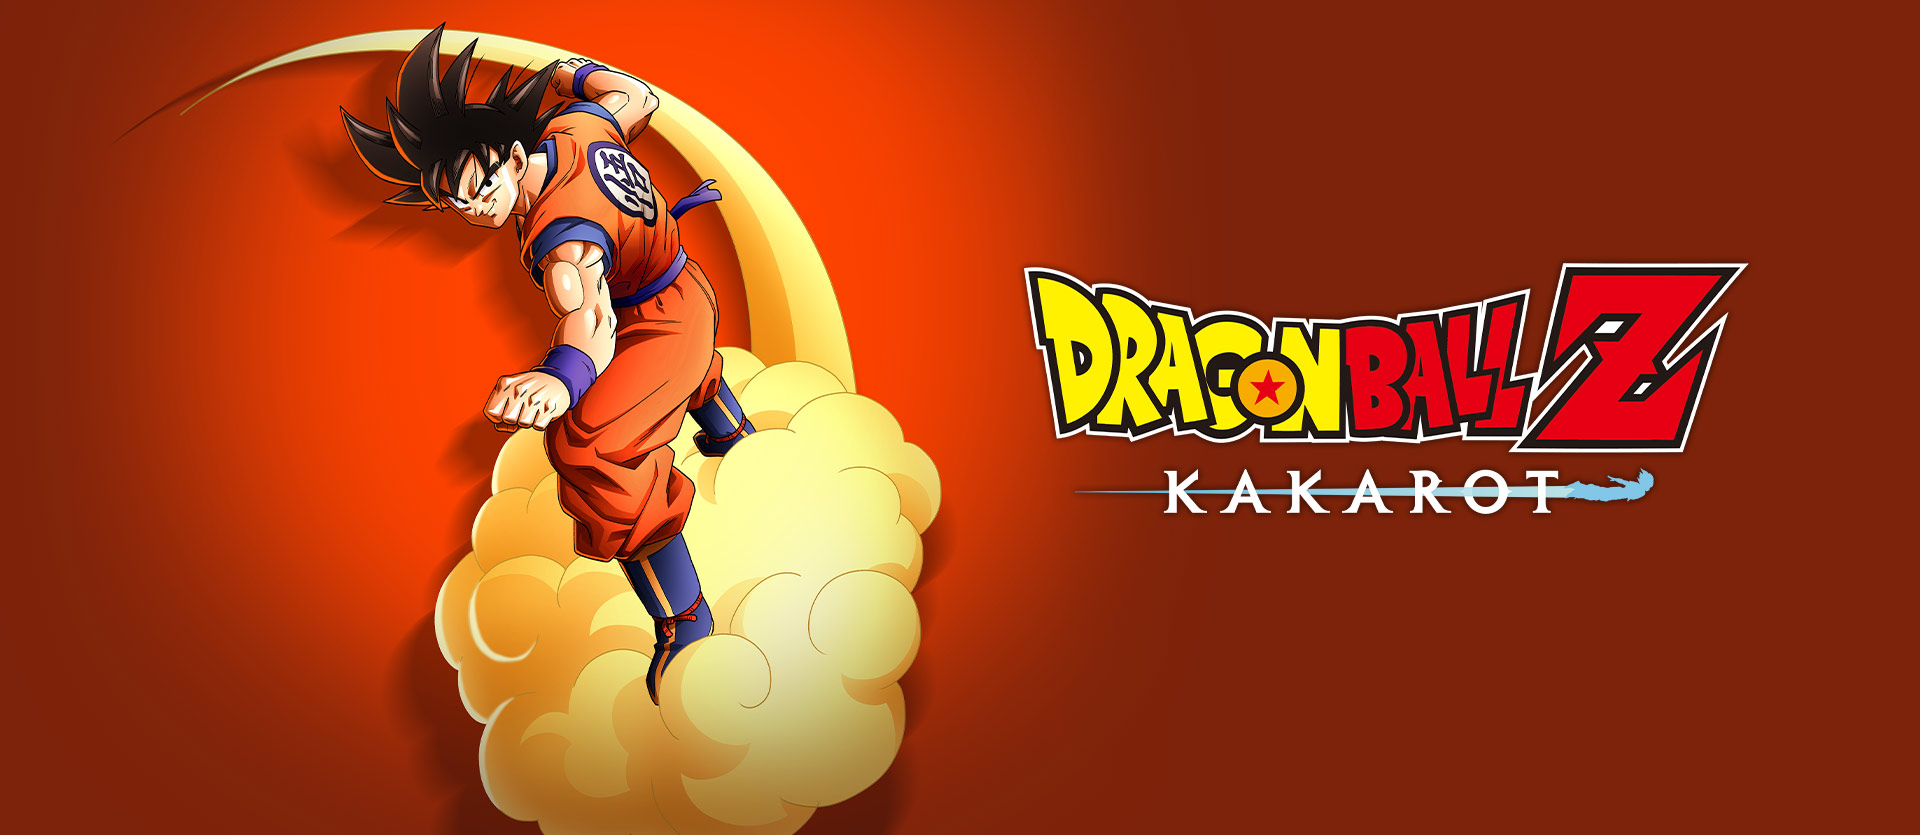 Dragon Ball Z: Kakarot, Logotipo de Dragon Ball Z: Kakarot con Goku sobre una nube